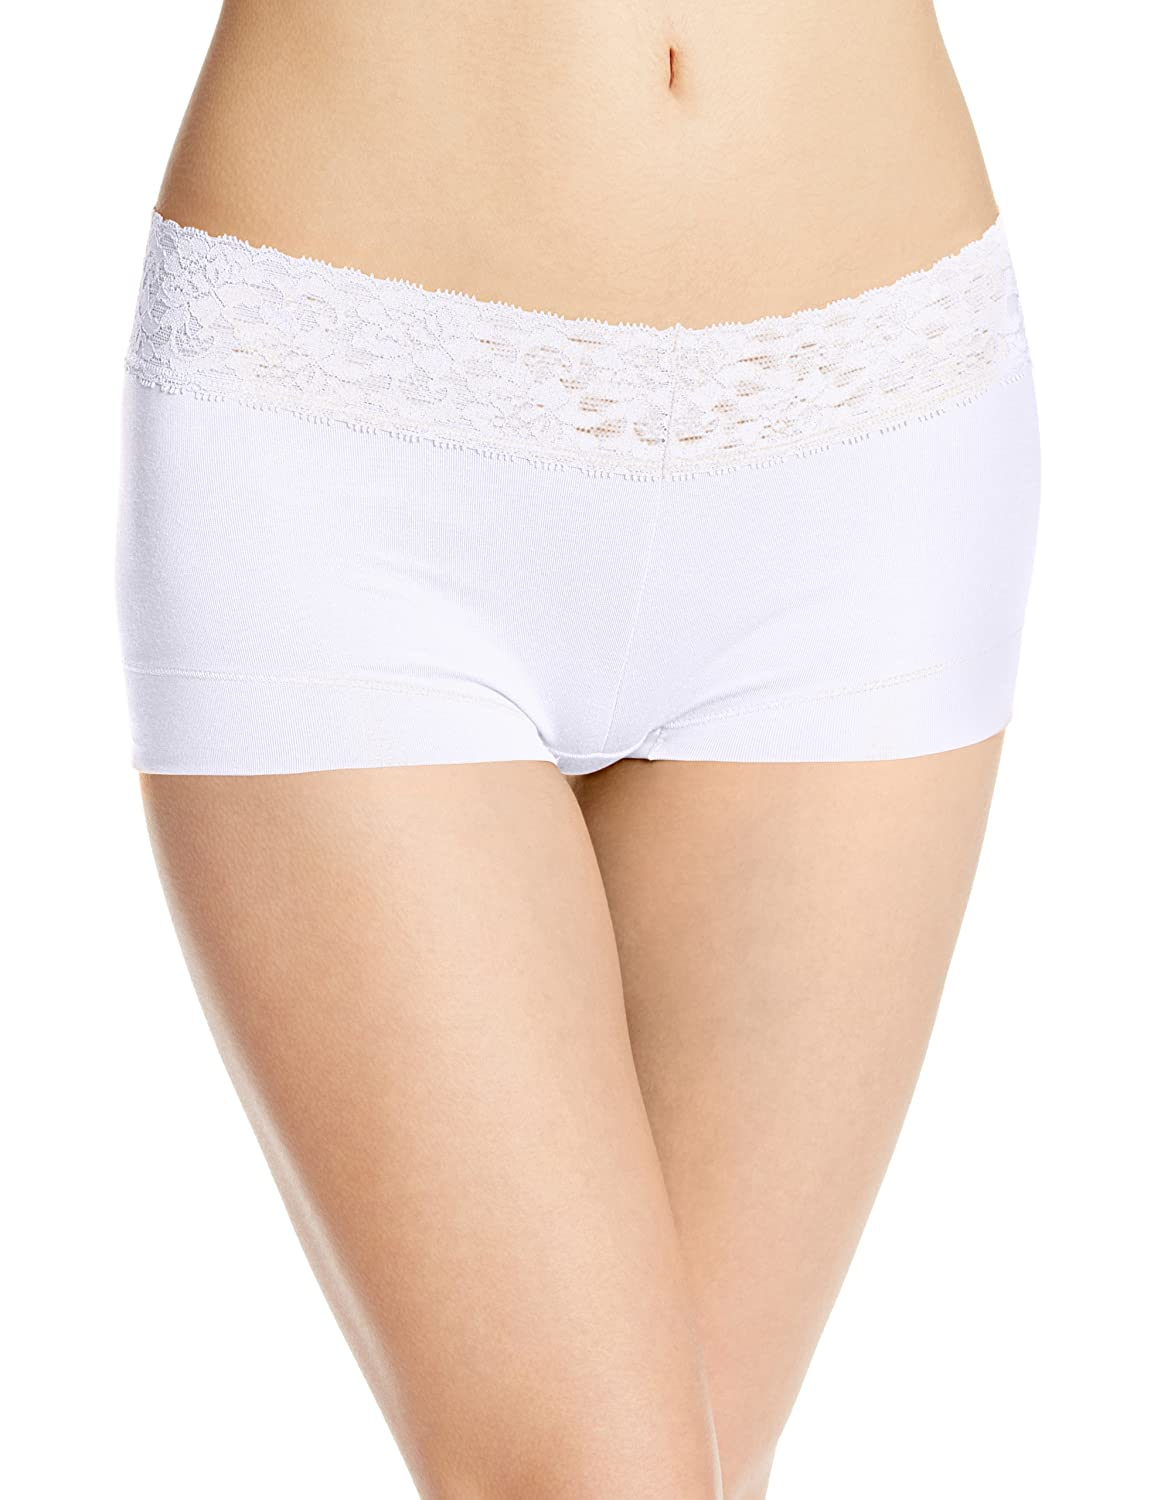 8bcd10d9d9db Maidenform Women's Dream Cotton with Lace Boyshort at Amazon Women's  Clothing store: